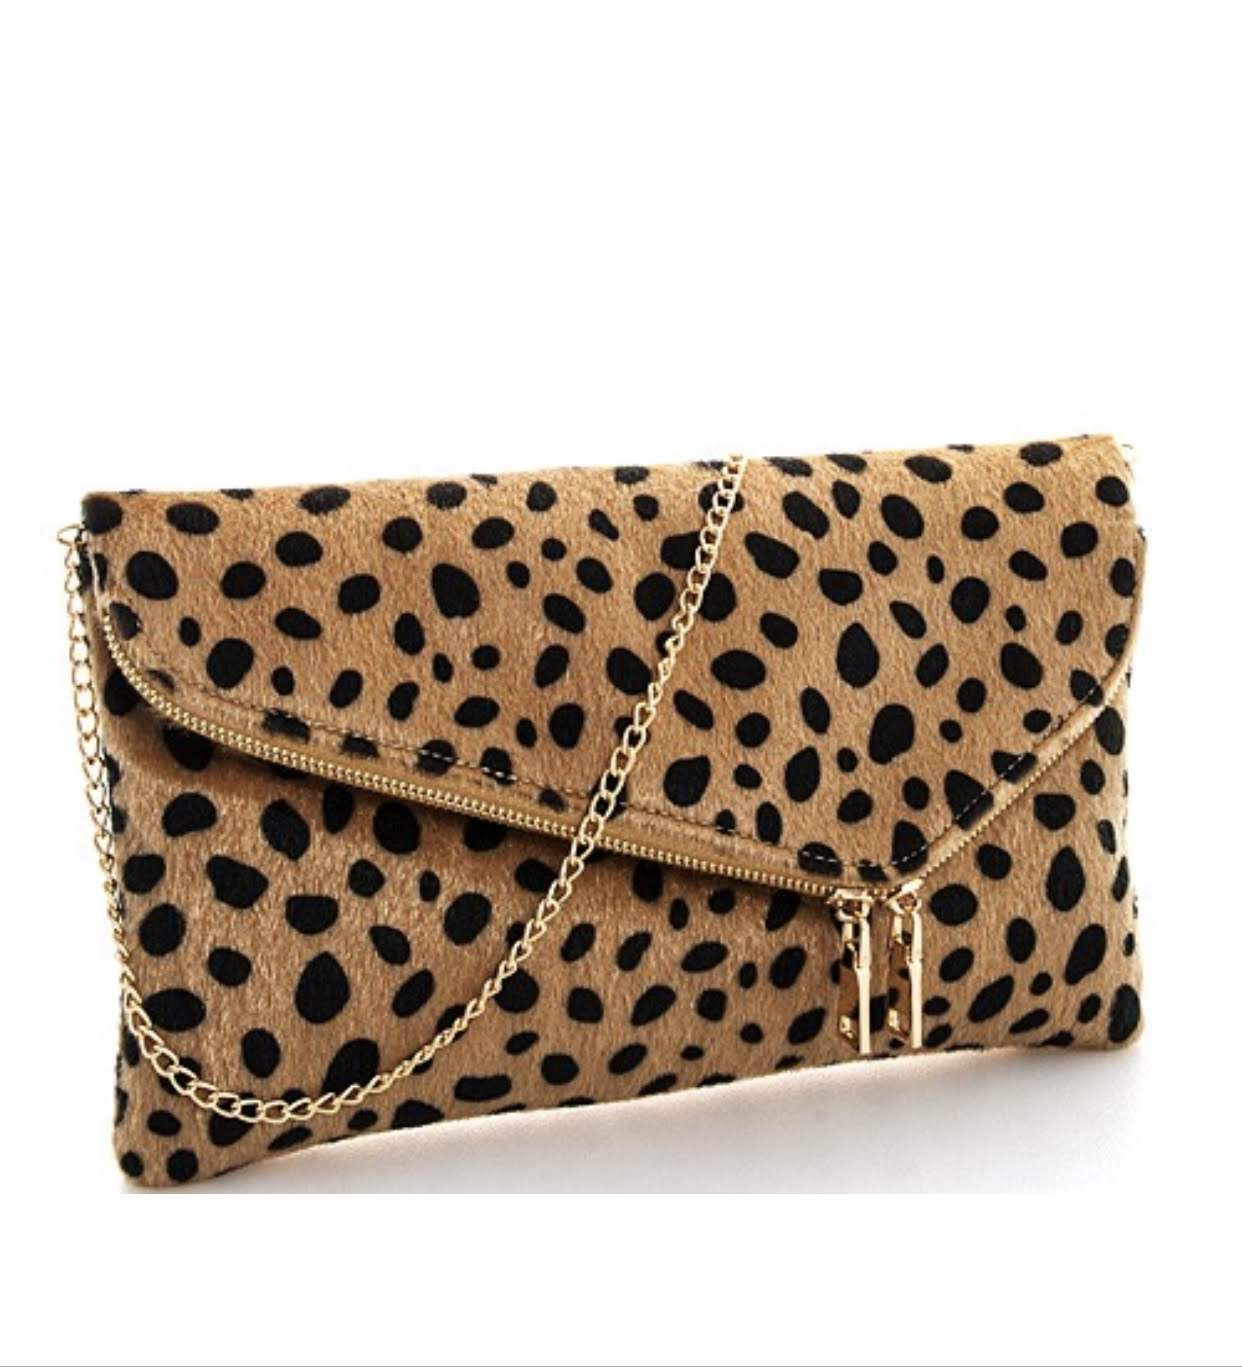 Leopard Print Clutch with Gold Chain Strap